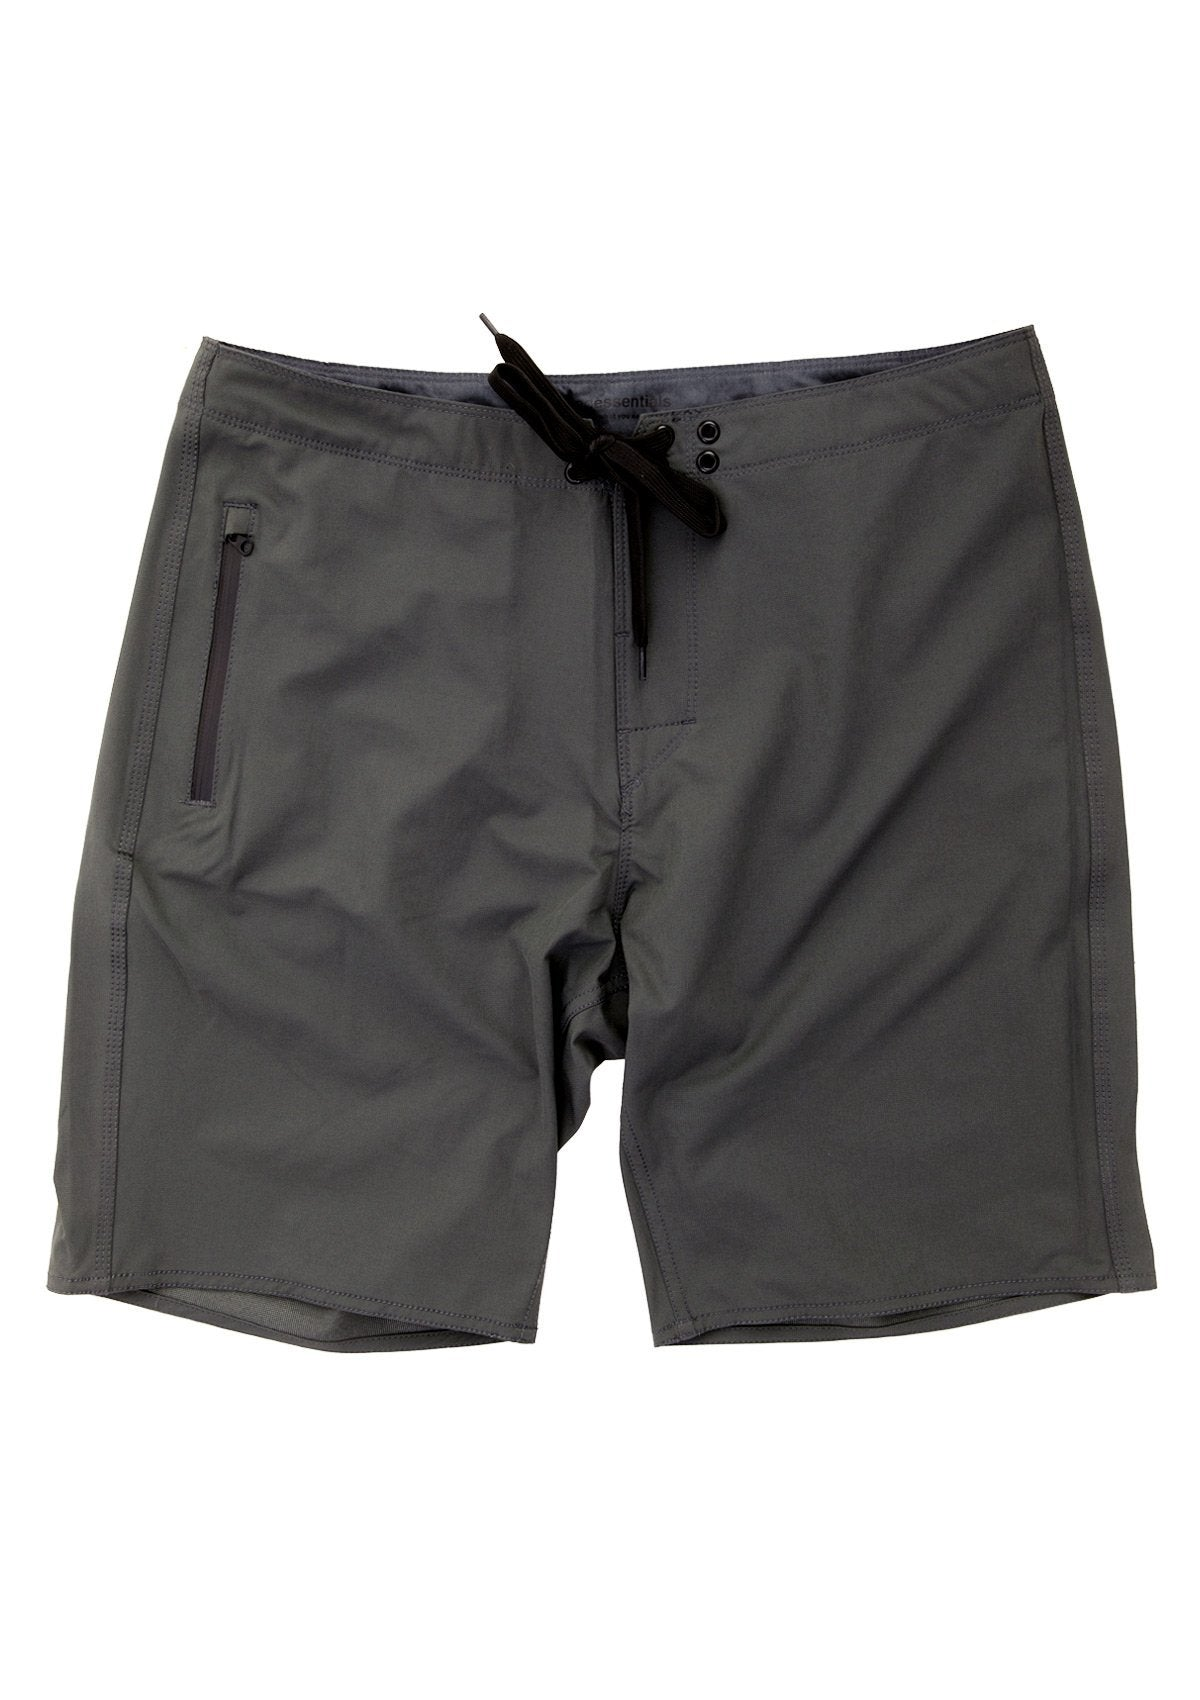 needessentials light weight mens surfing boardshorts non branded dark grey torren martyn